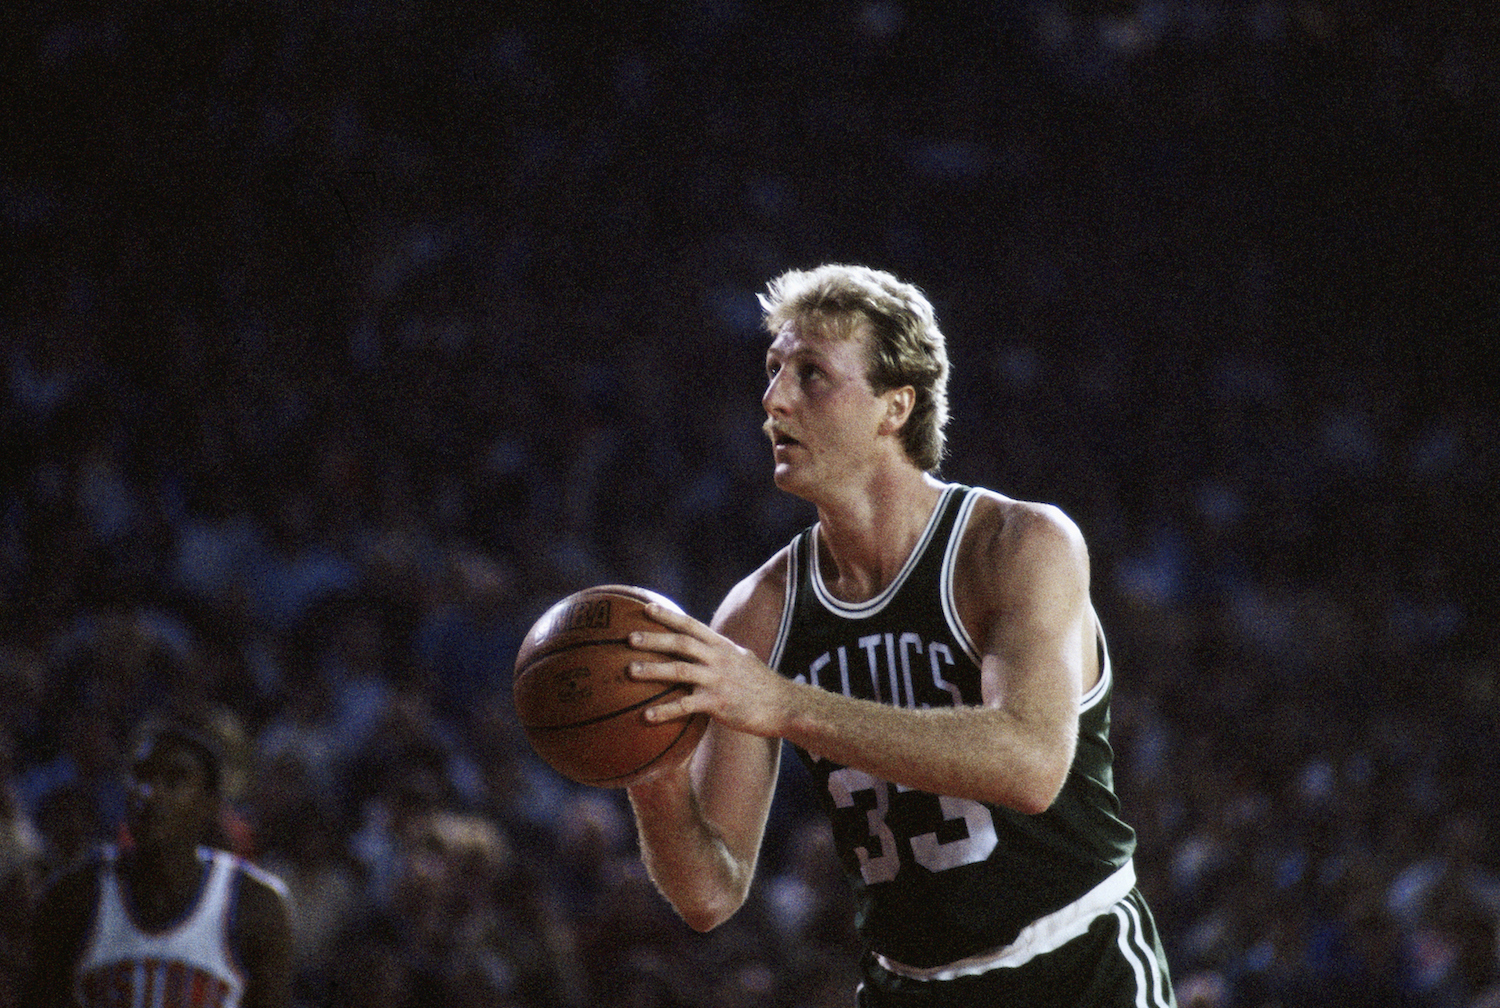 While Larry Bird had an iconic NBA career, he didn't think about basketball once he stepped on the court.